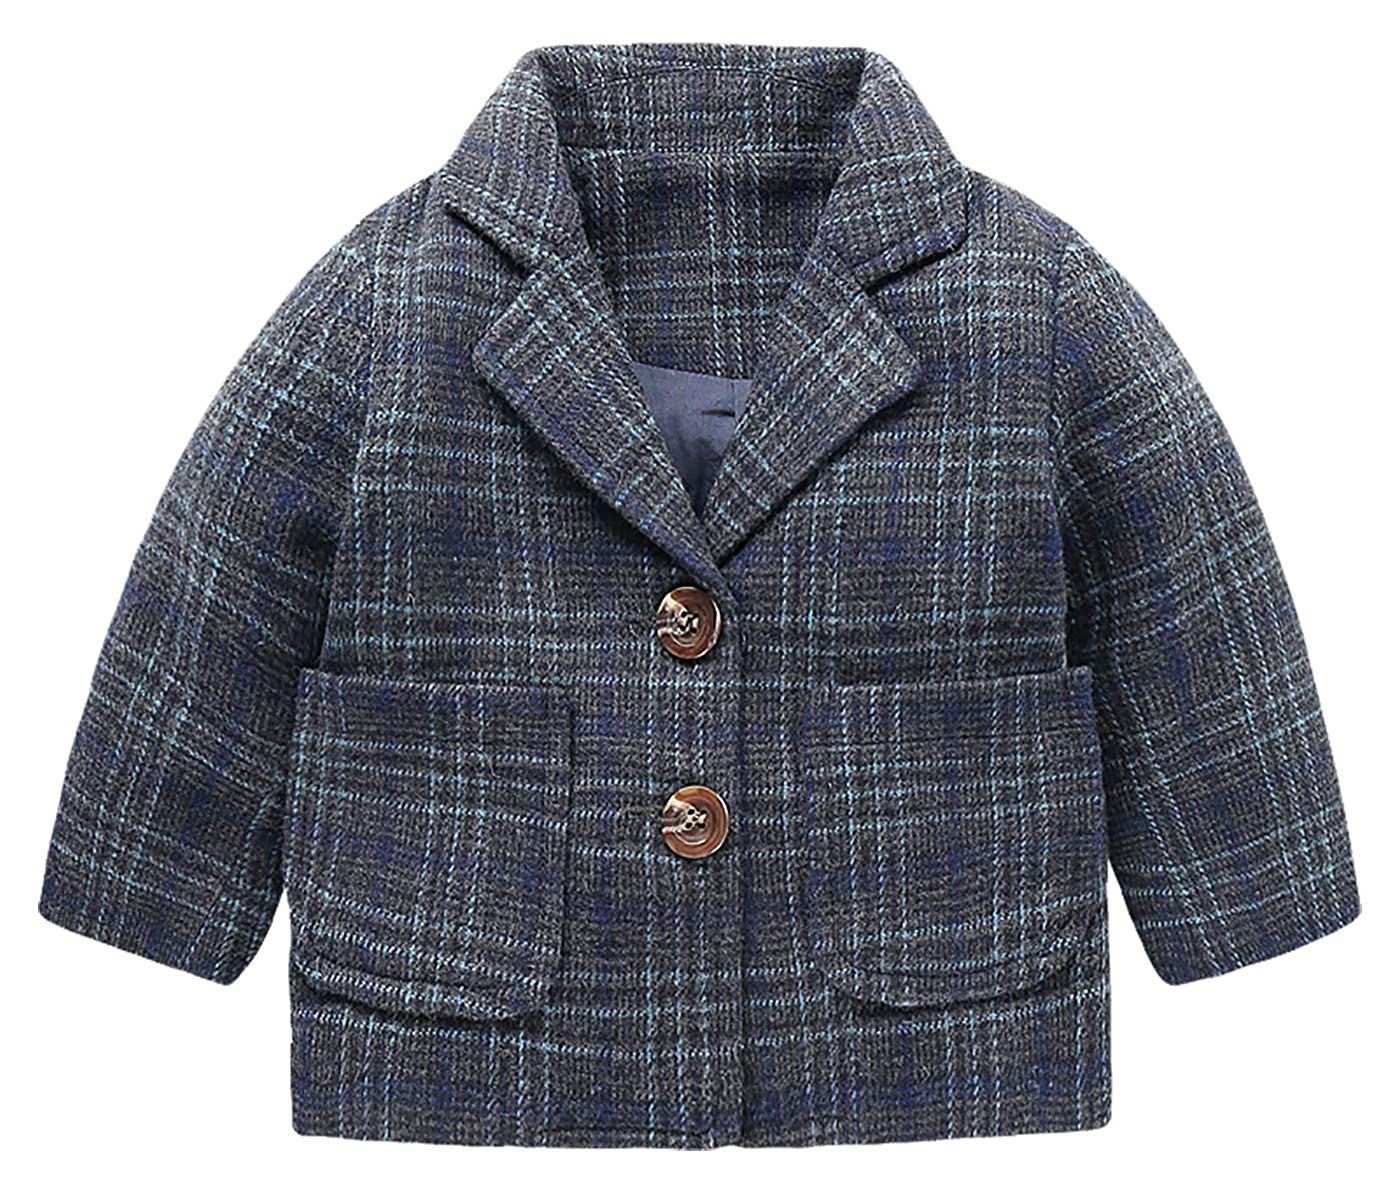 Boys Plaid Blazer Coat Jacket Soft Cotton Outerwear Coat Lapel Sleeves Outwear Right Euro